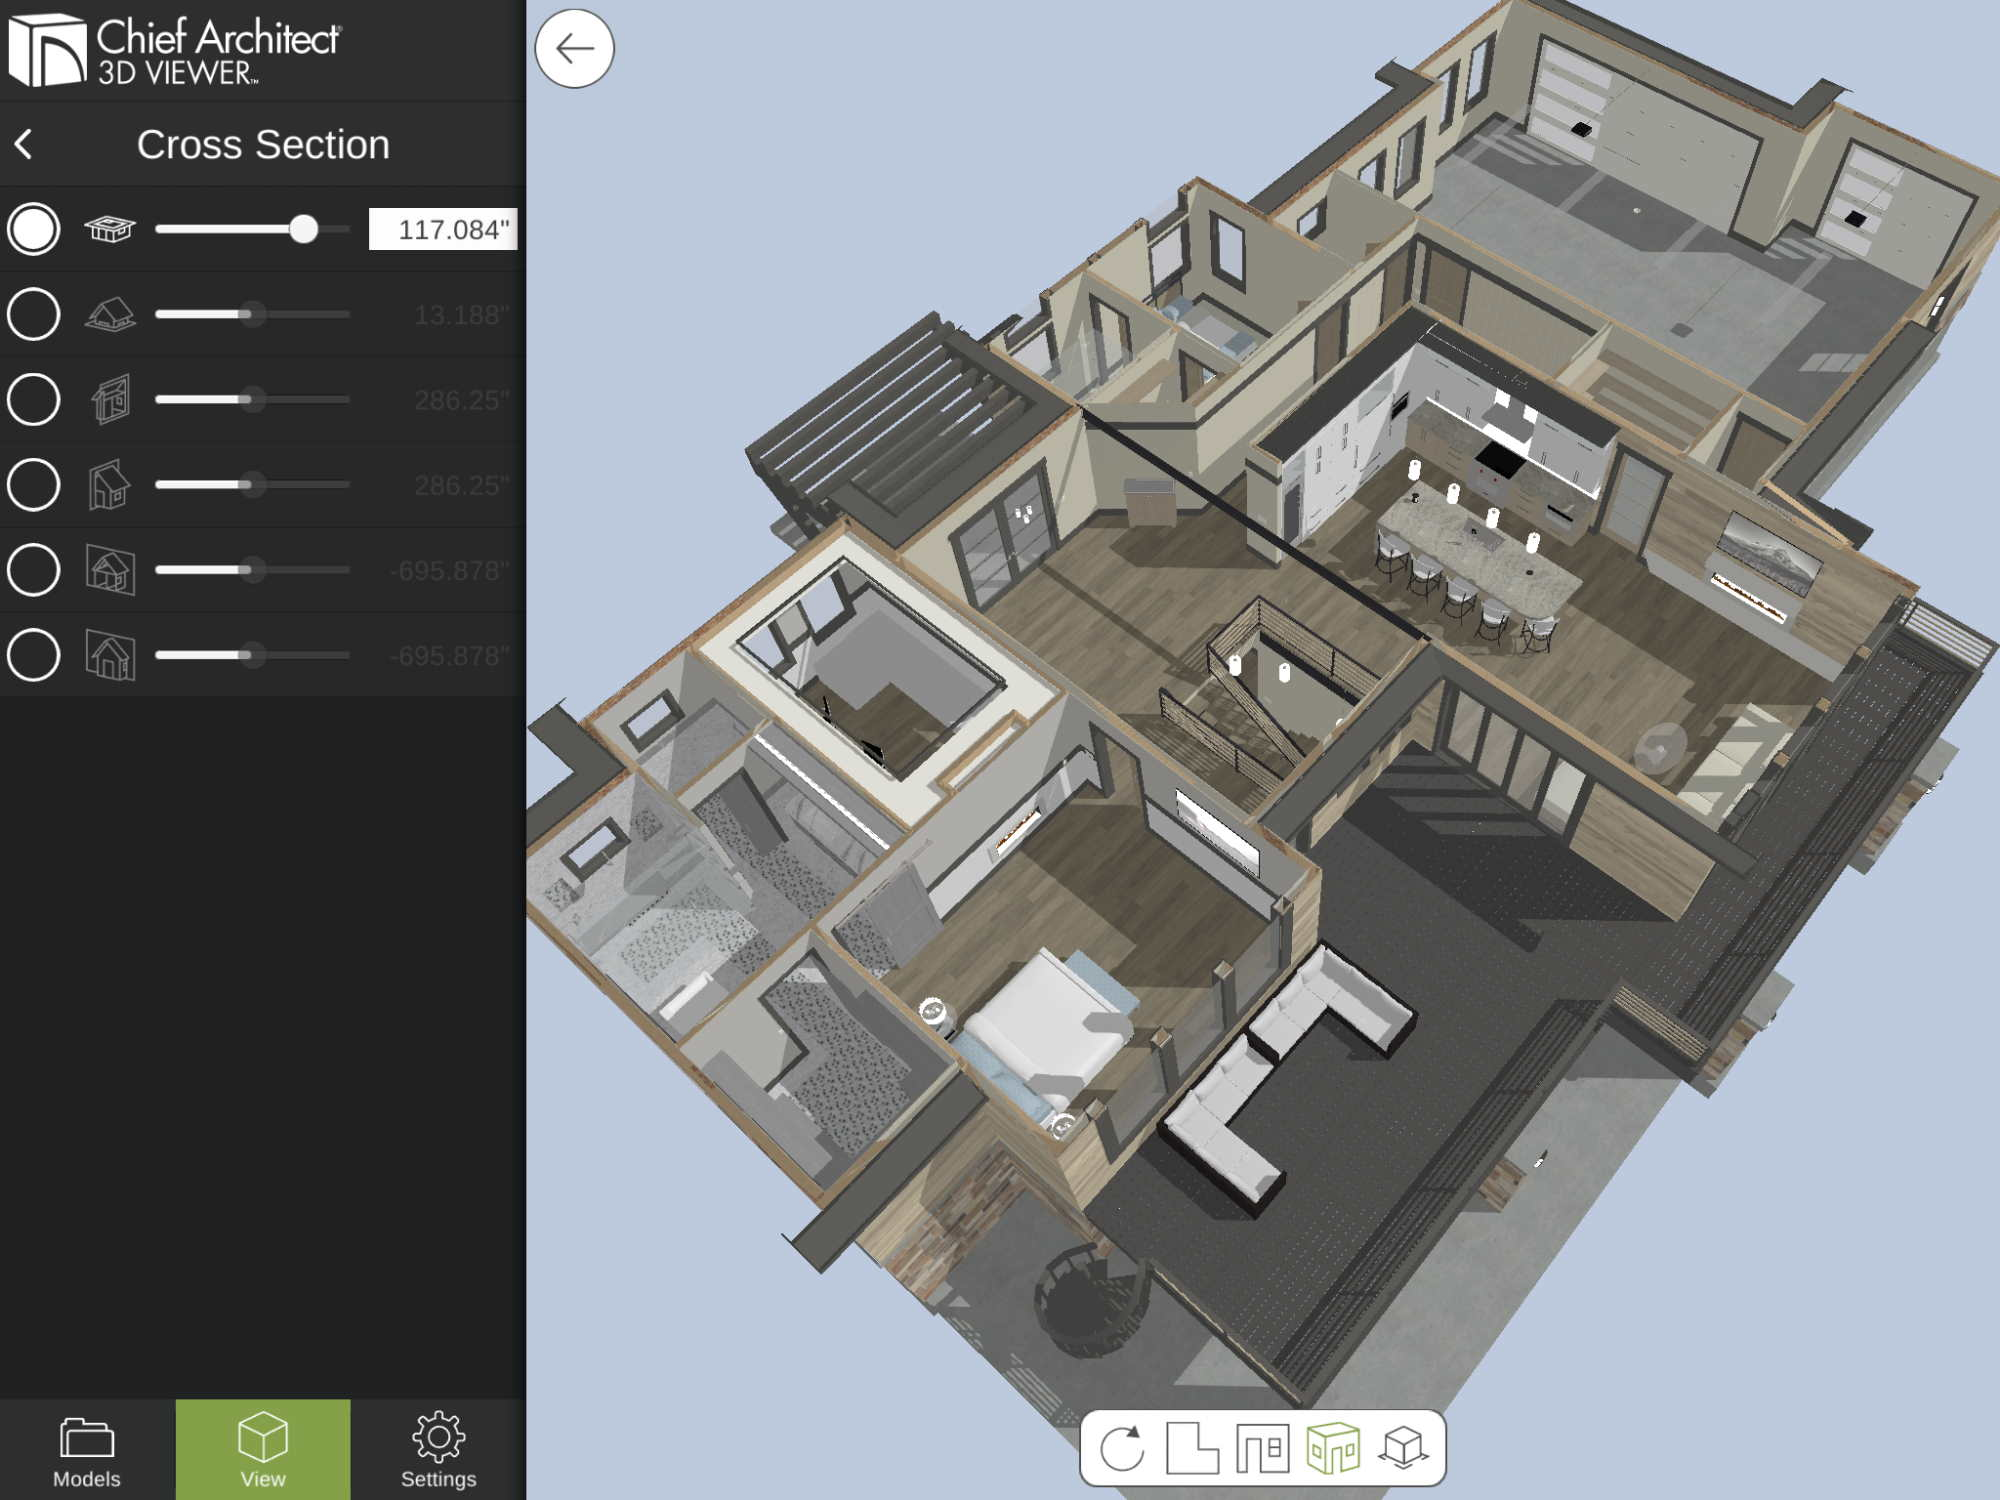 Overhead floor plan view in 3D Viewer application shows model at various heights.